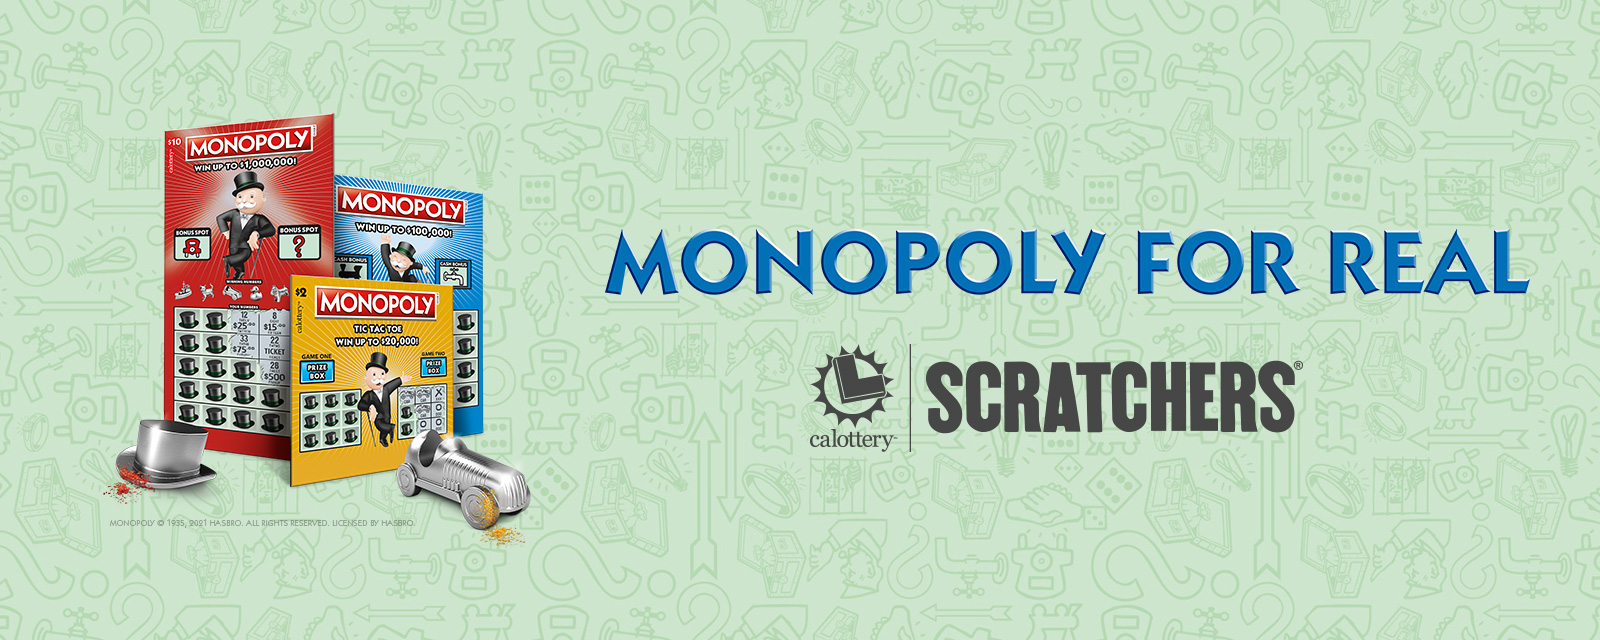 monopoly scratchers on a green background